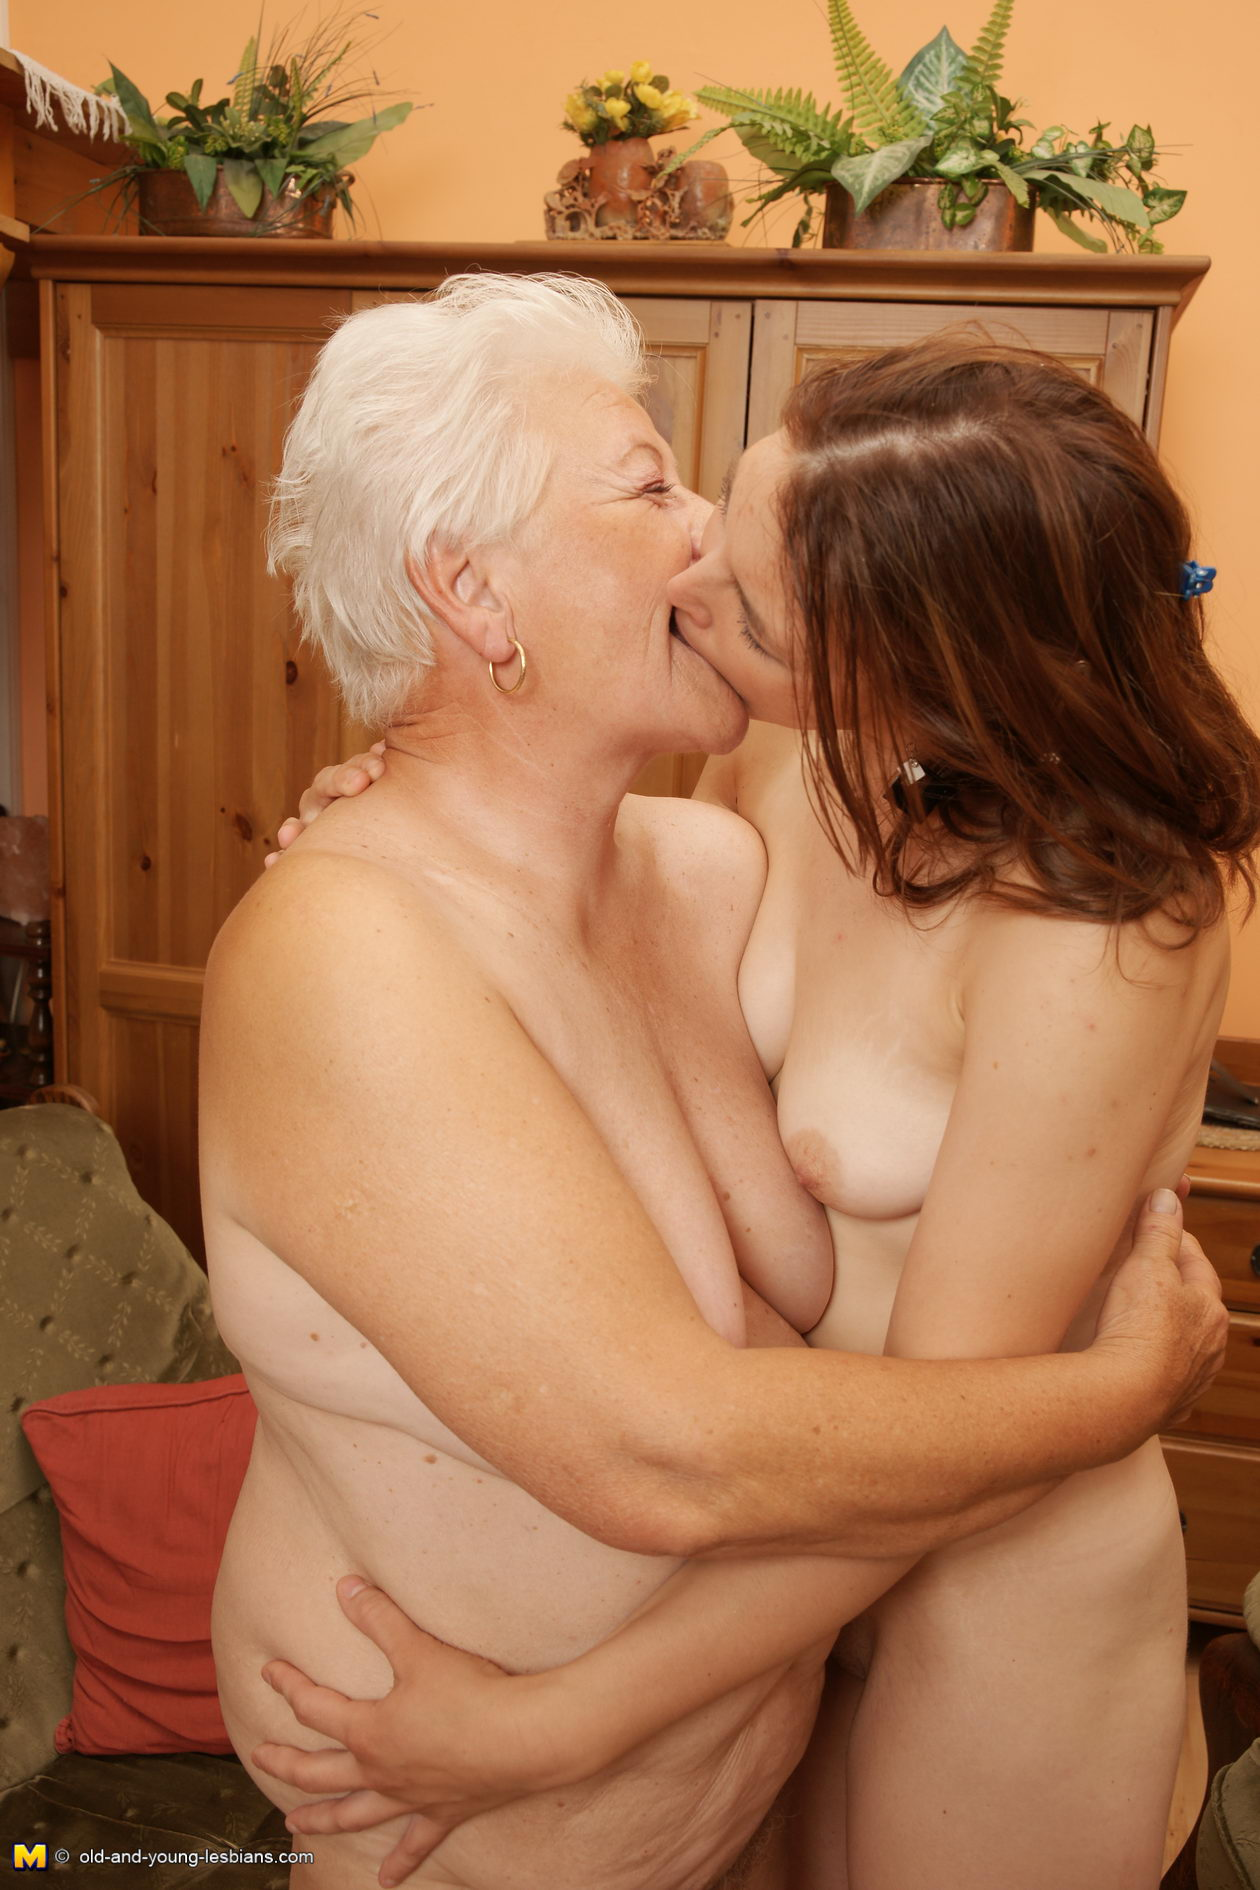 Are lesbian naked older woman pity